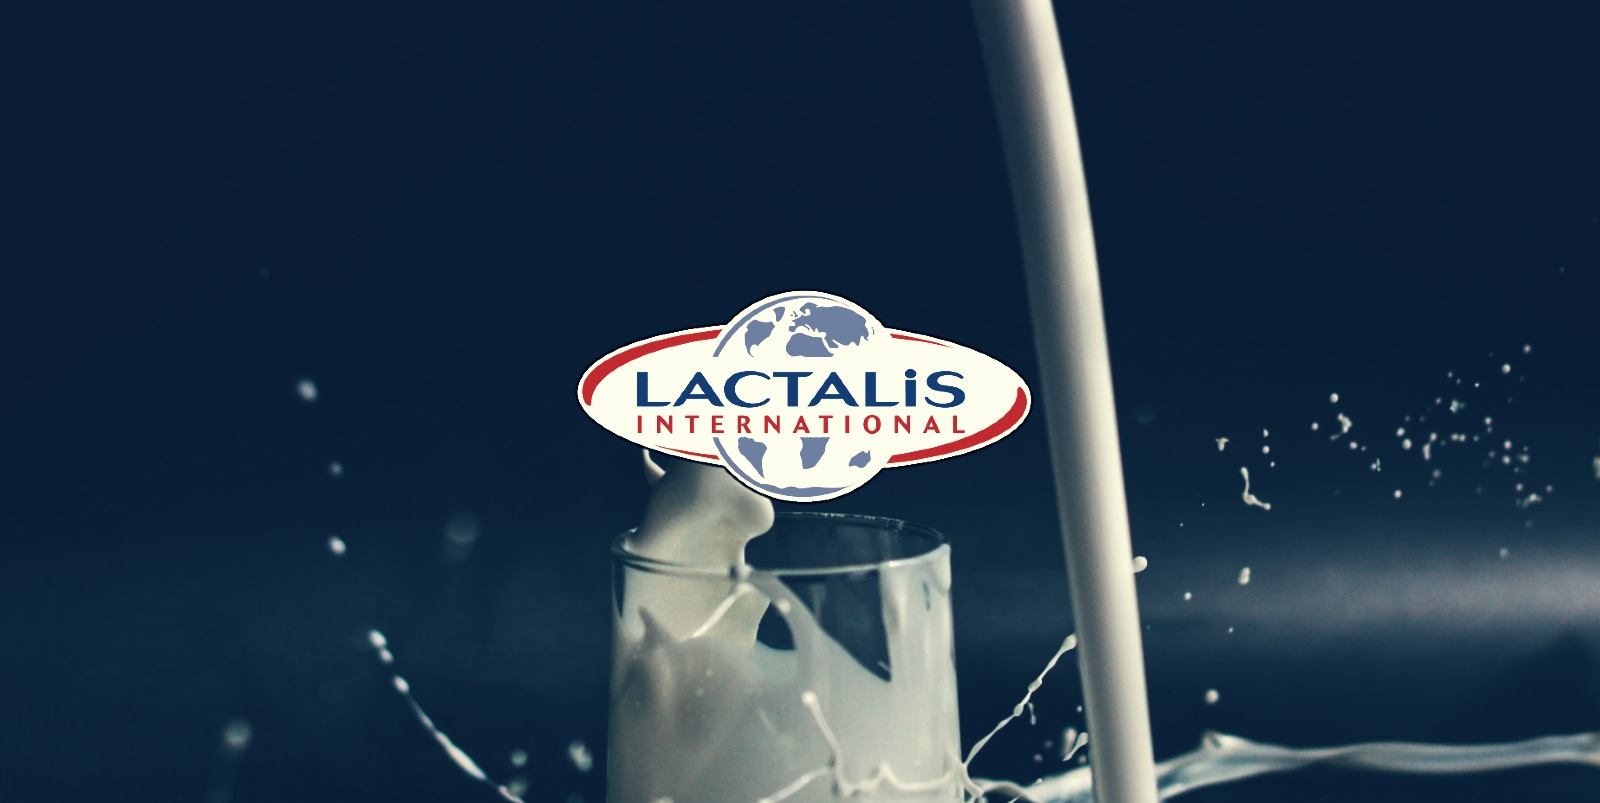 World's leading dairy group Lactalis hit by cyberattack